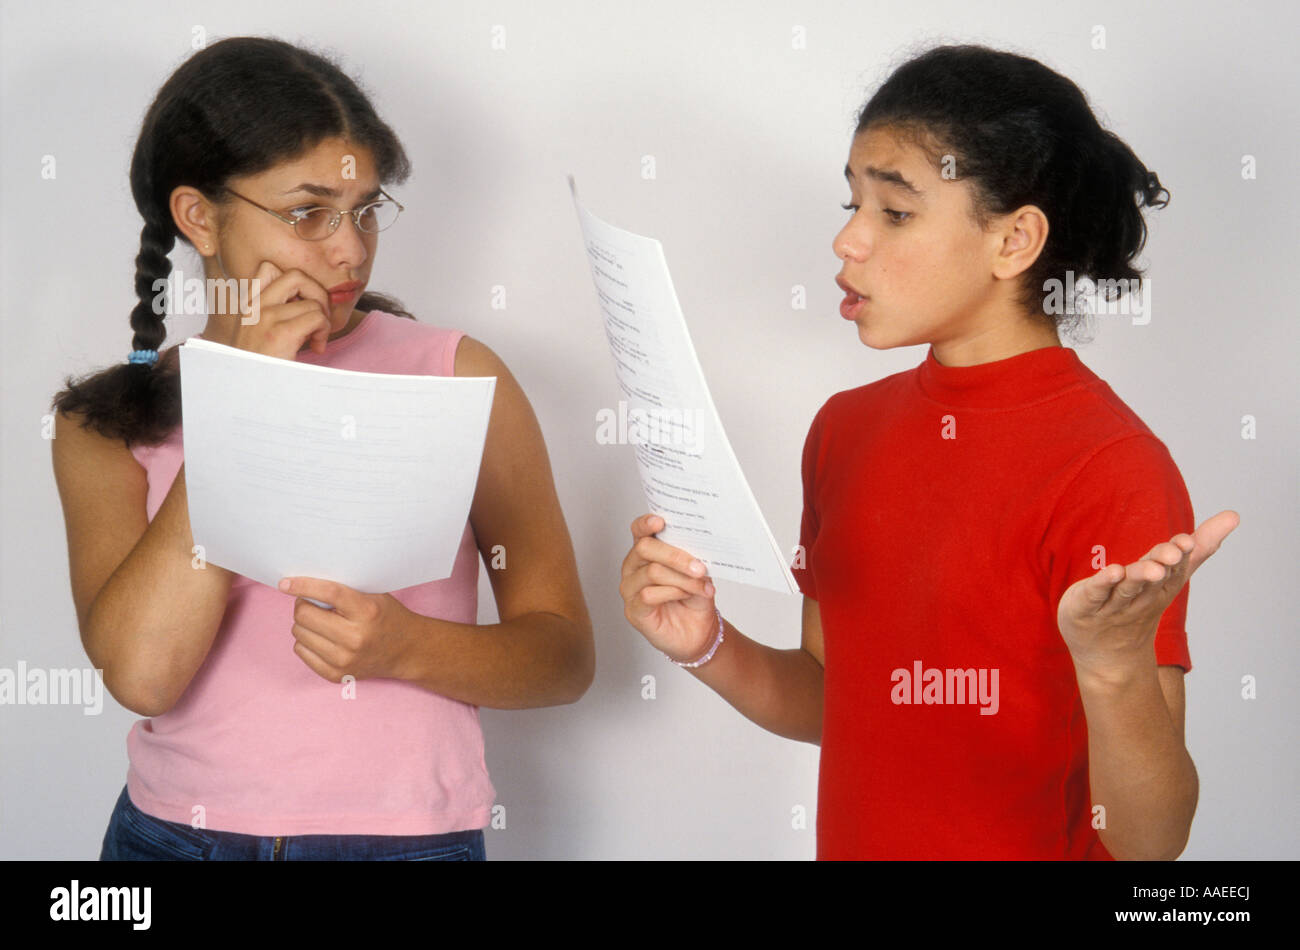 2 young girls aged 12 - 14 reading and performing from script - Stock Image